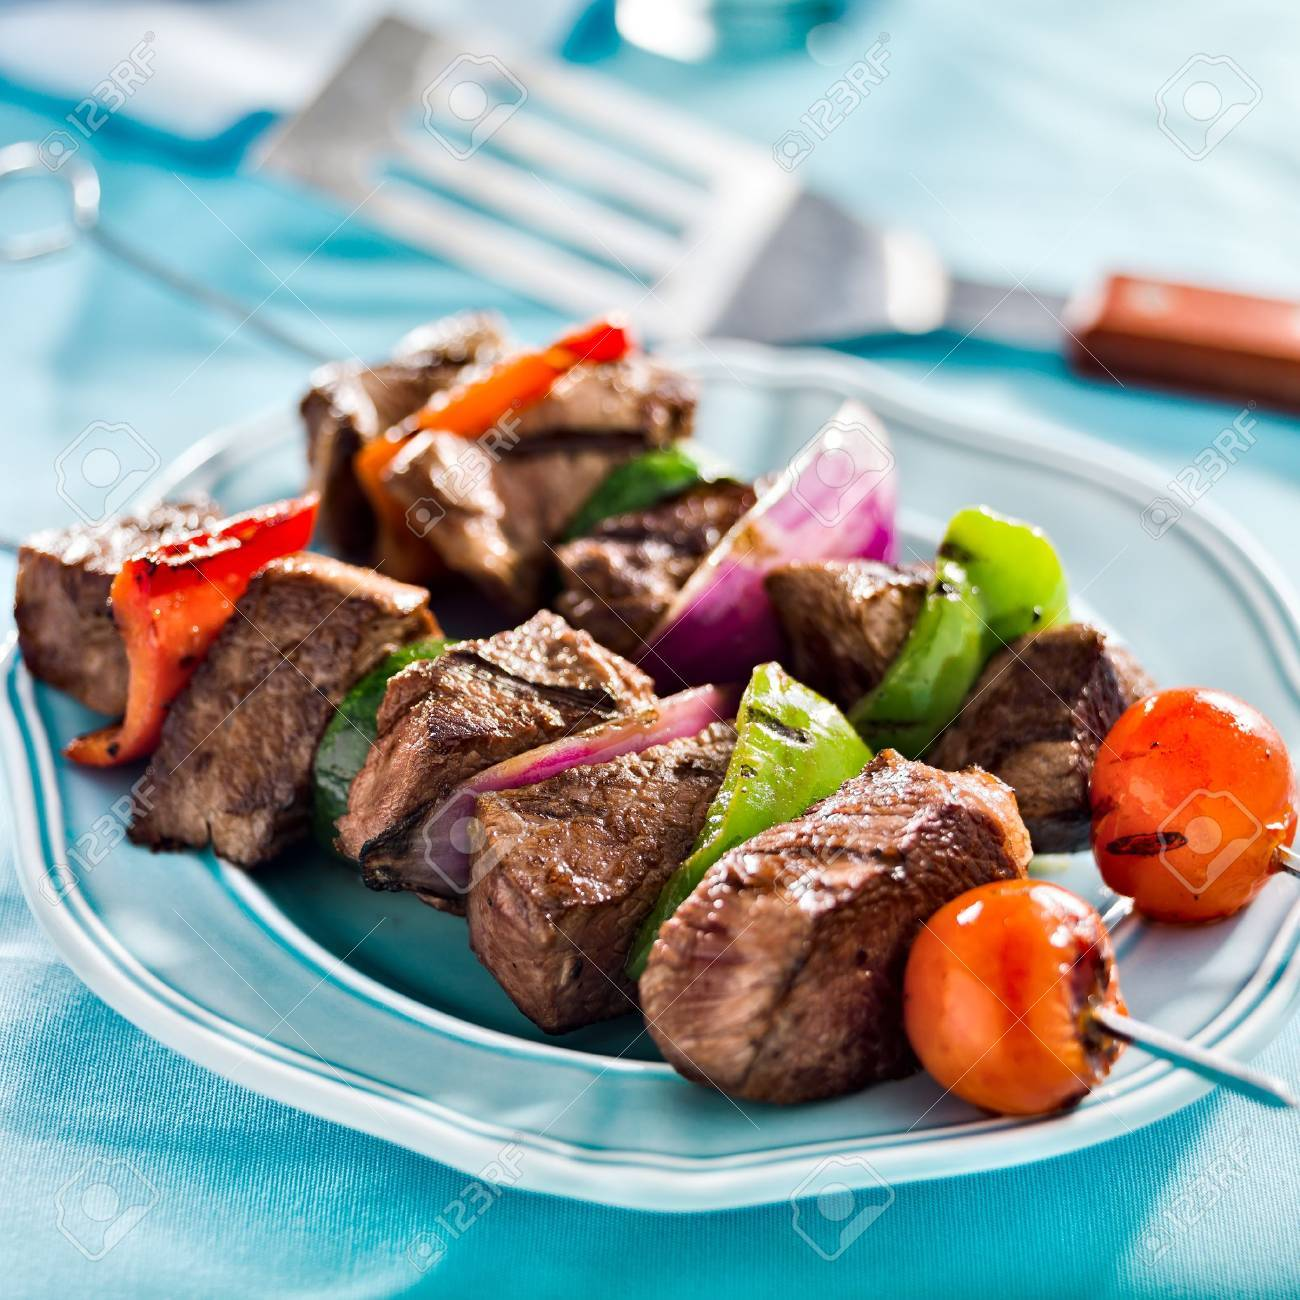 grilled beef shishkabobs on table Stock Photo - 21585413